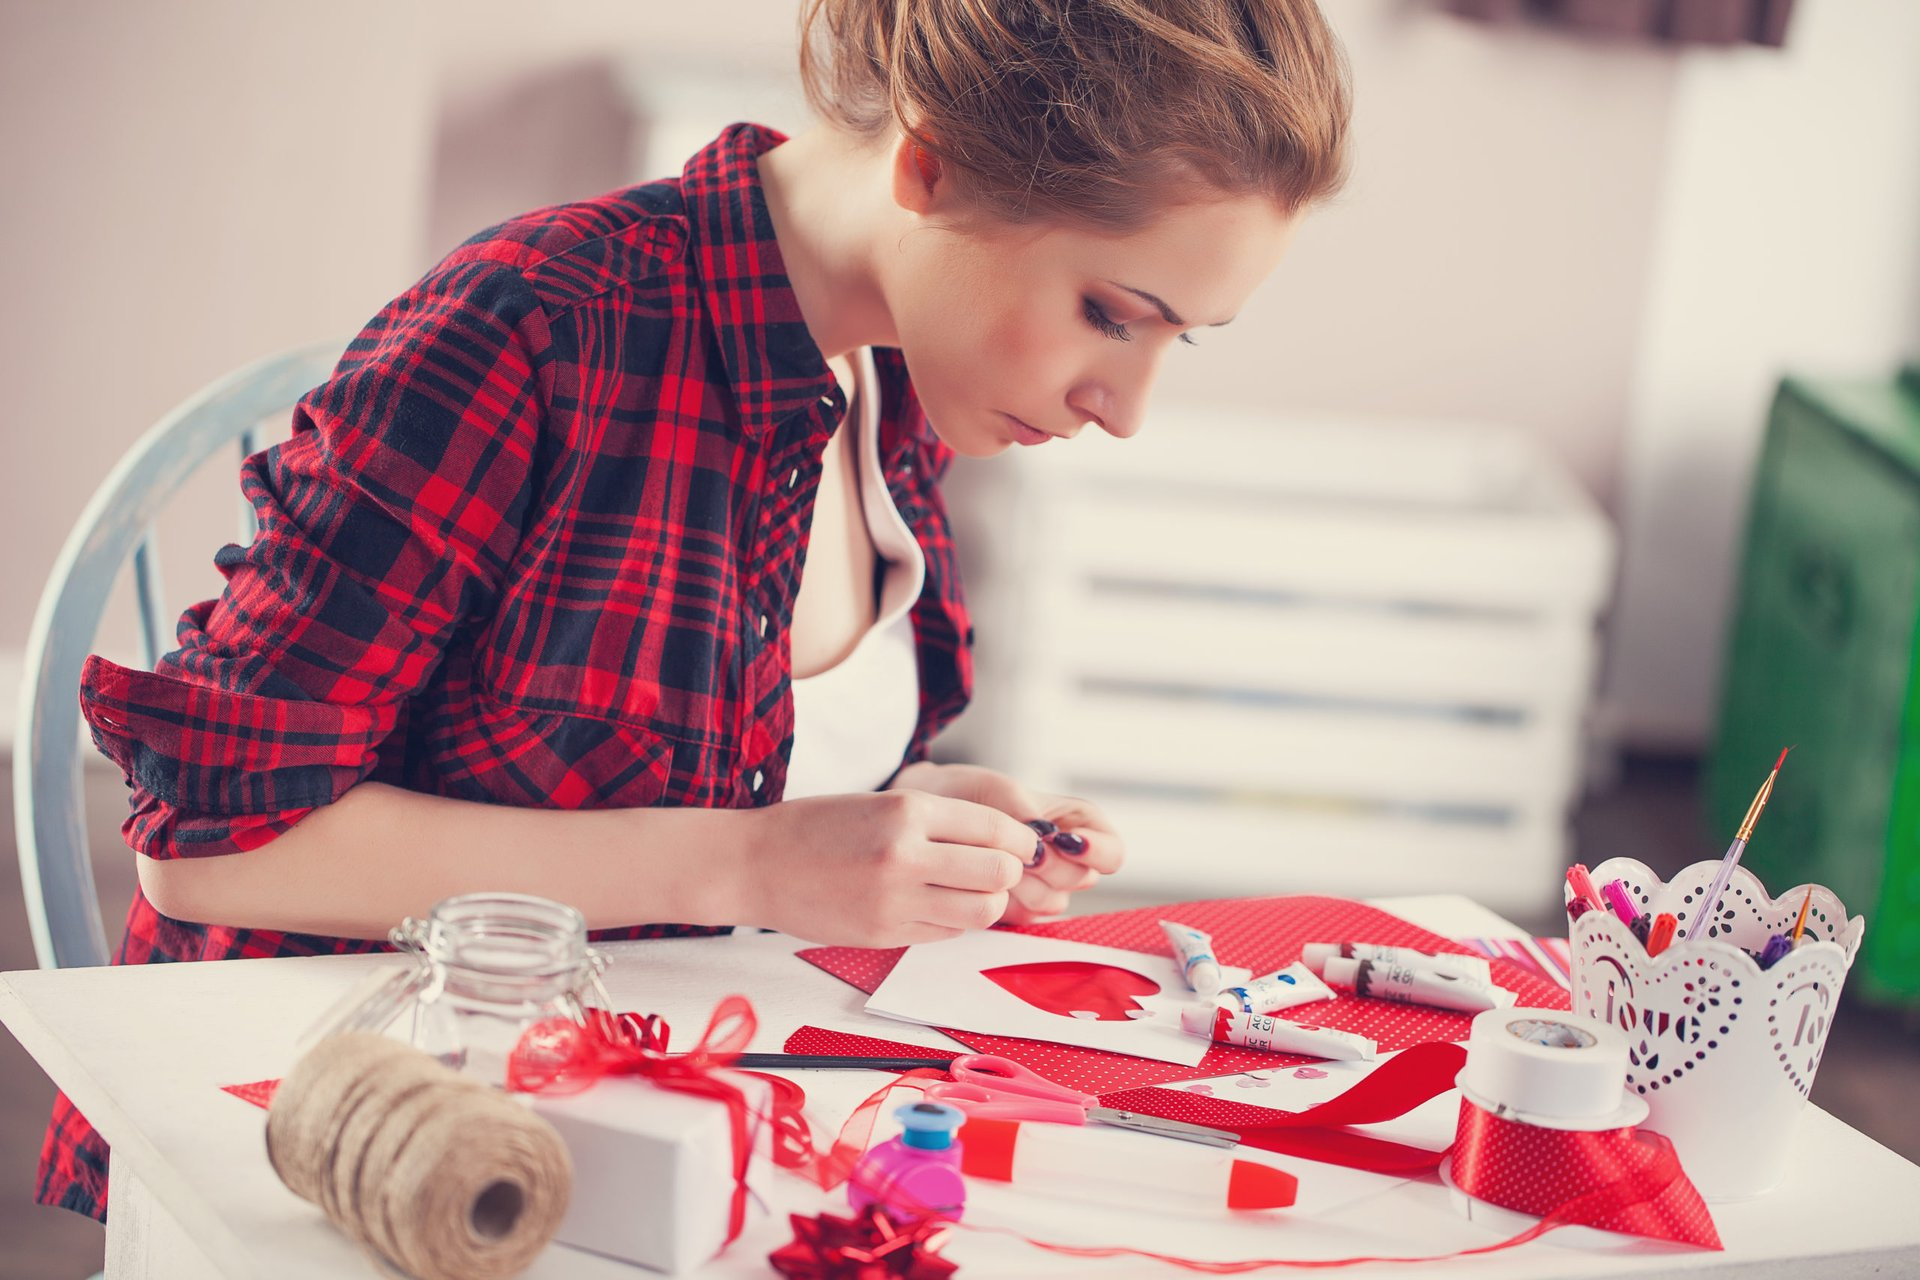 Woman crafting at home